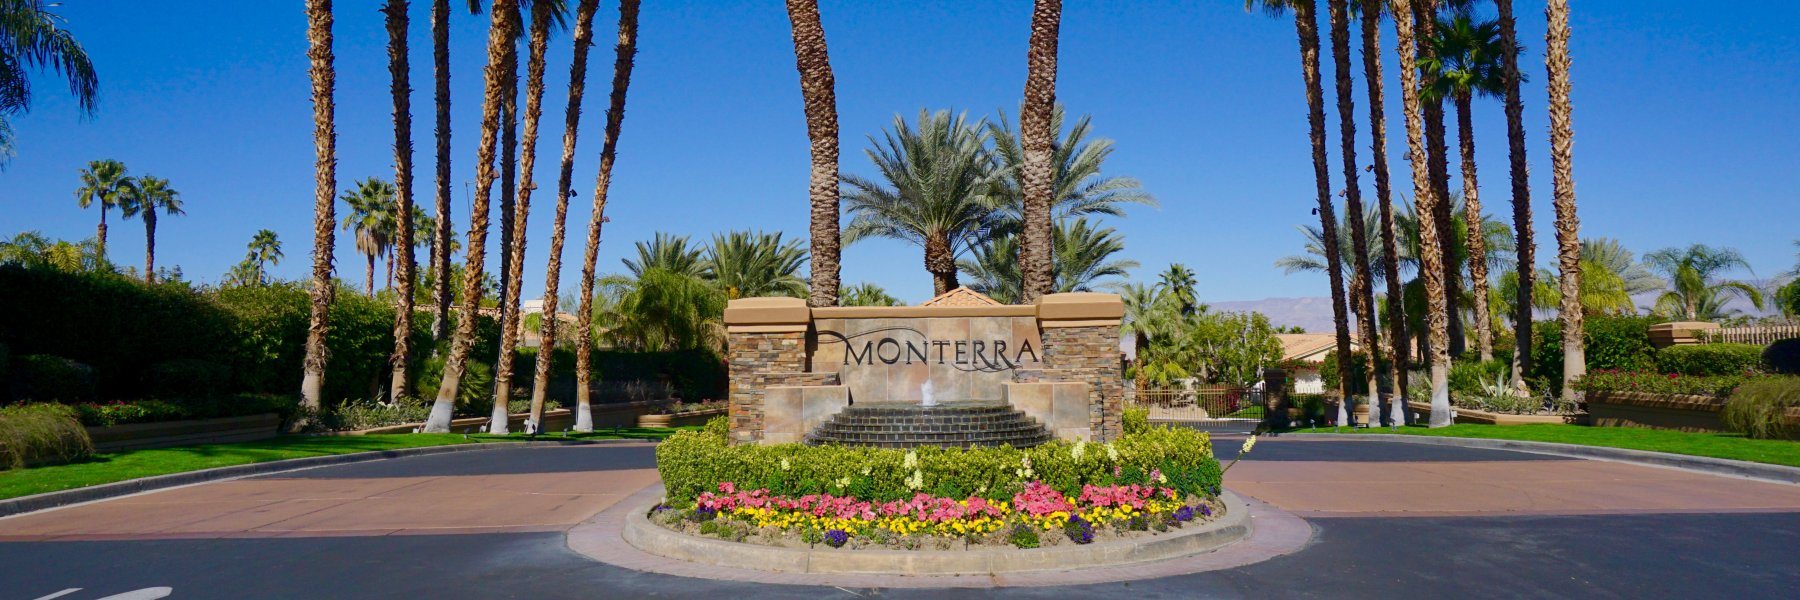 Monterra is a community of homes in Palm Desert California